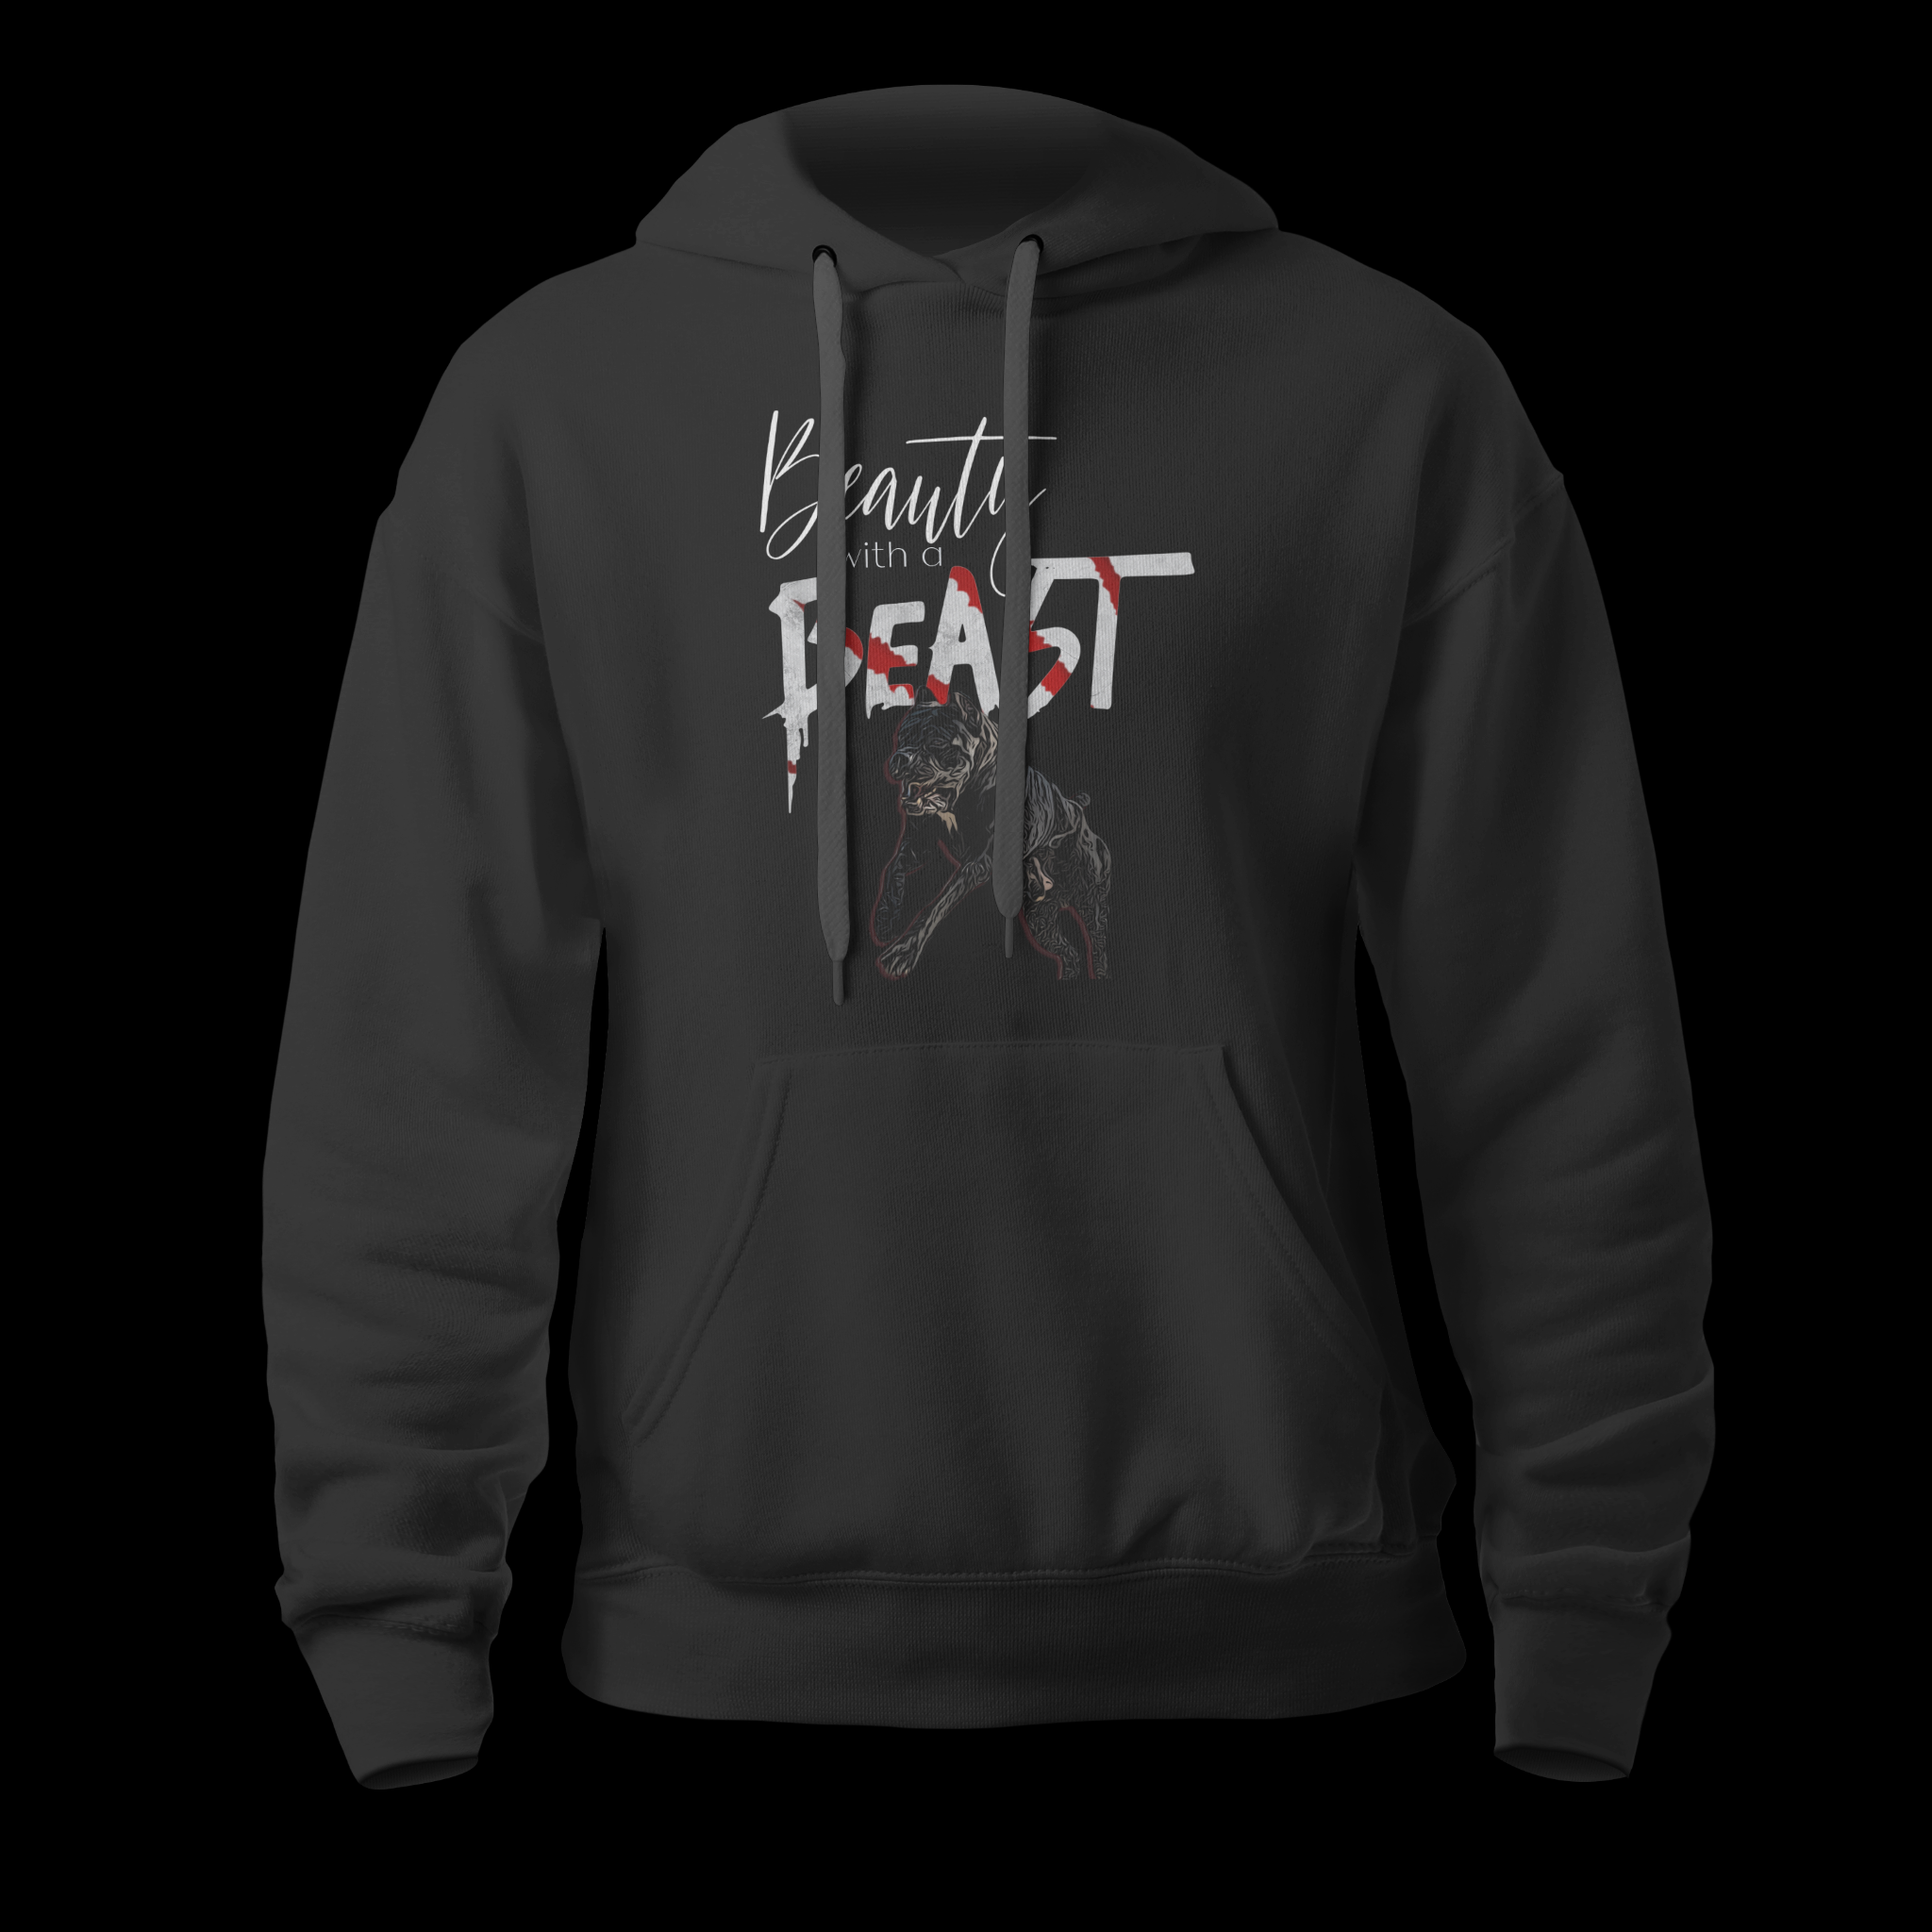 Beauty With a Beast 2.0 Unisex hoodie